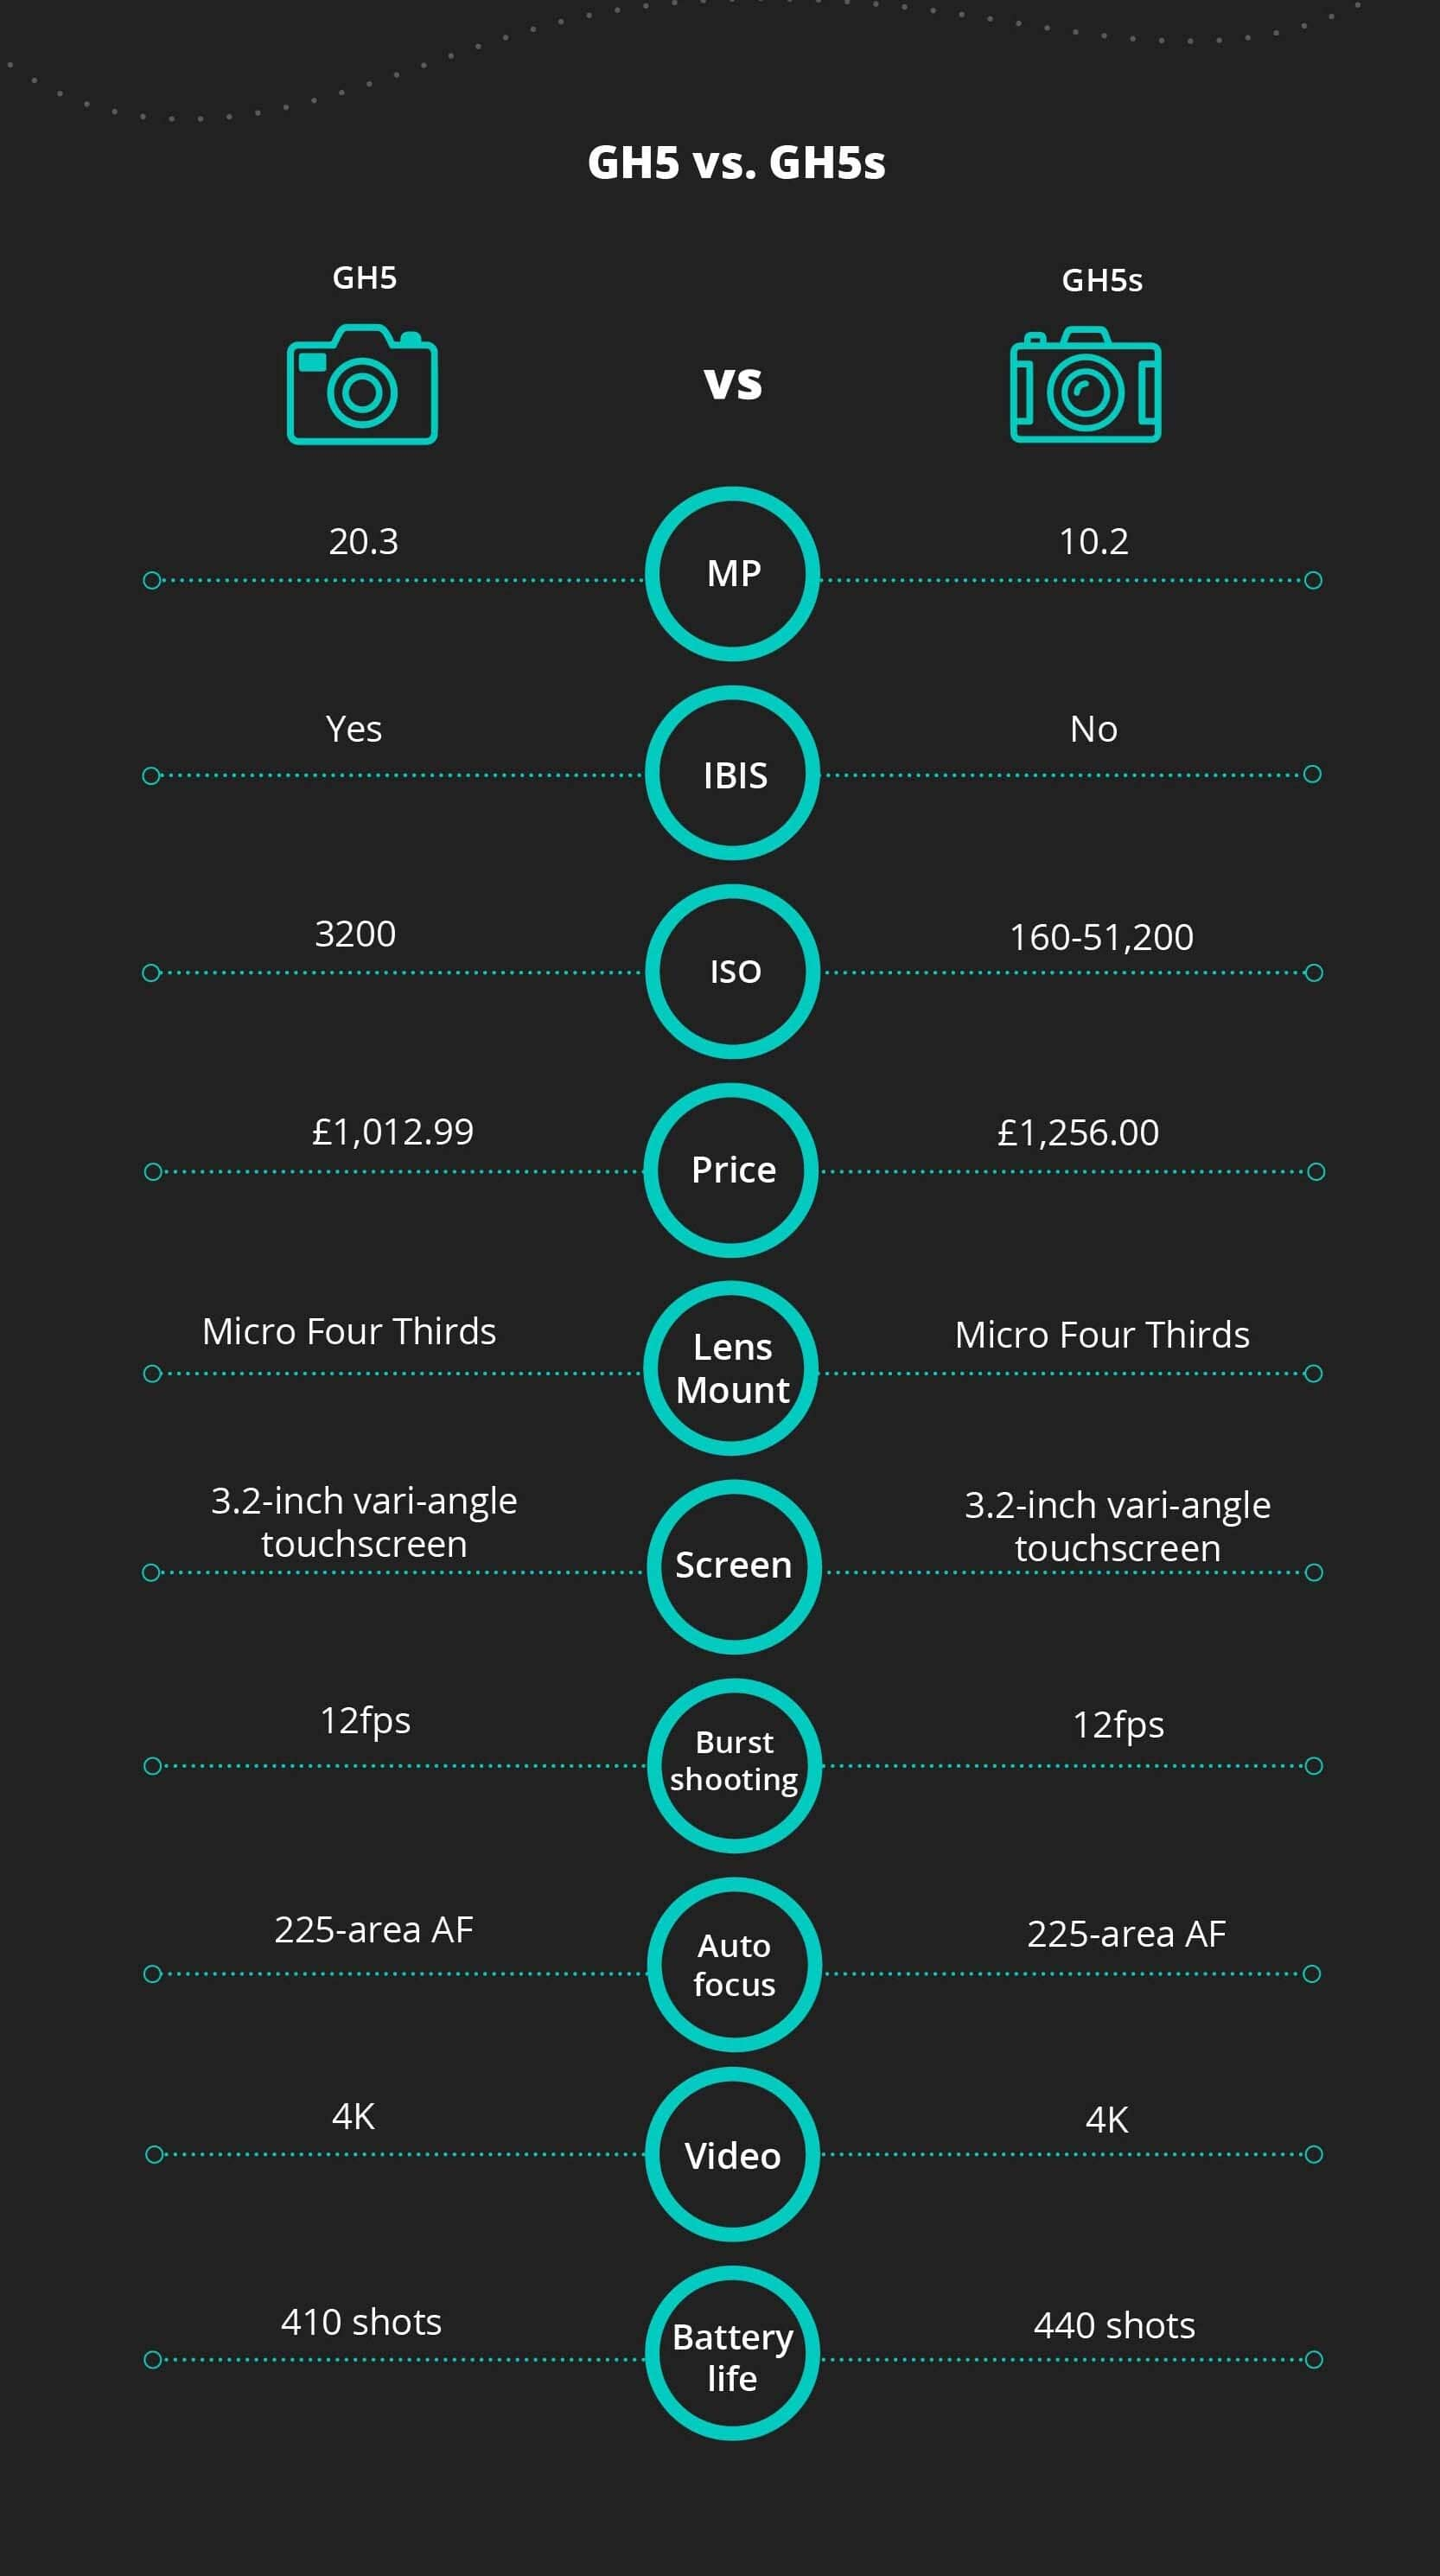 Infographics for difference between GH5 and GH5s, GH5 and GH5s comparison